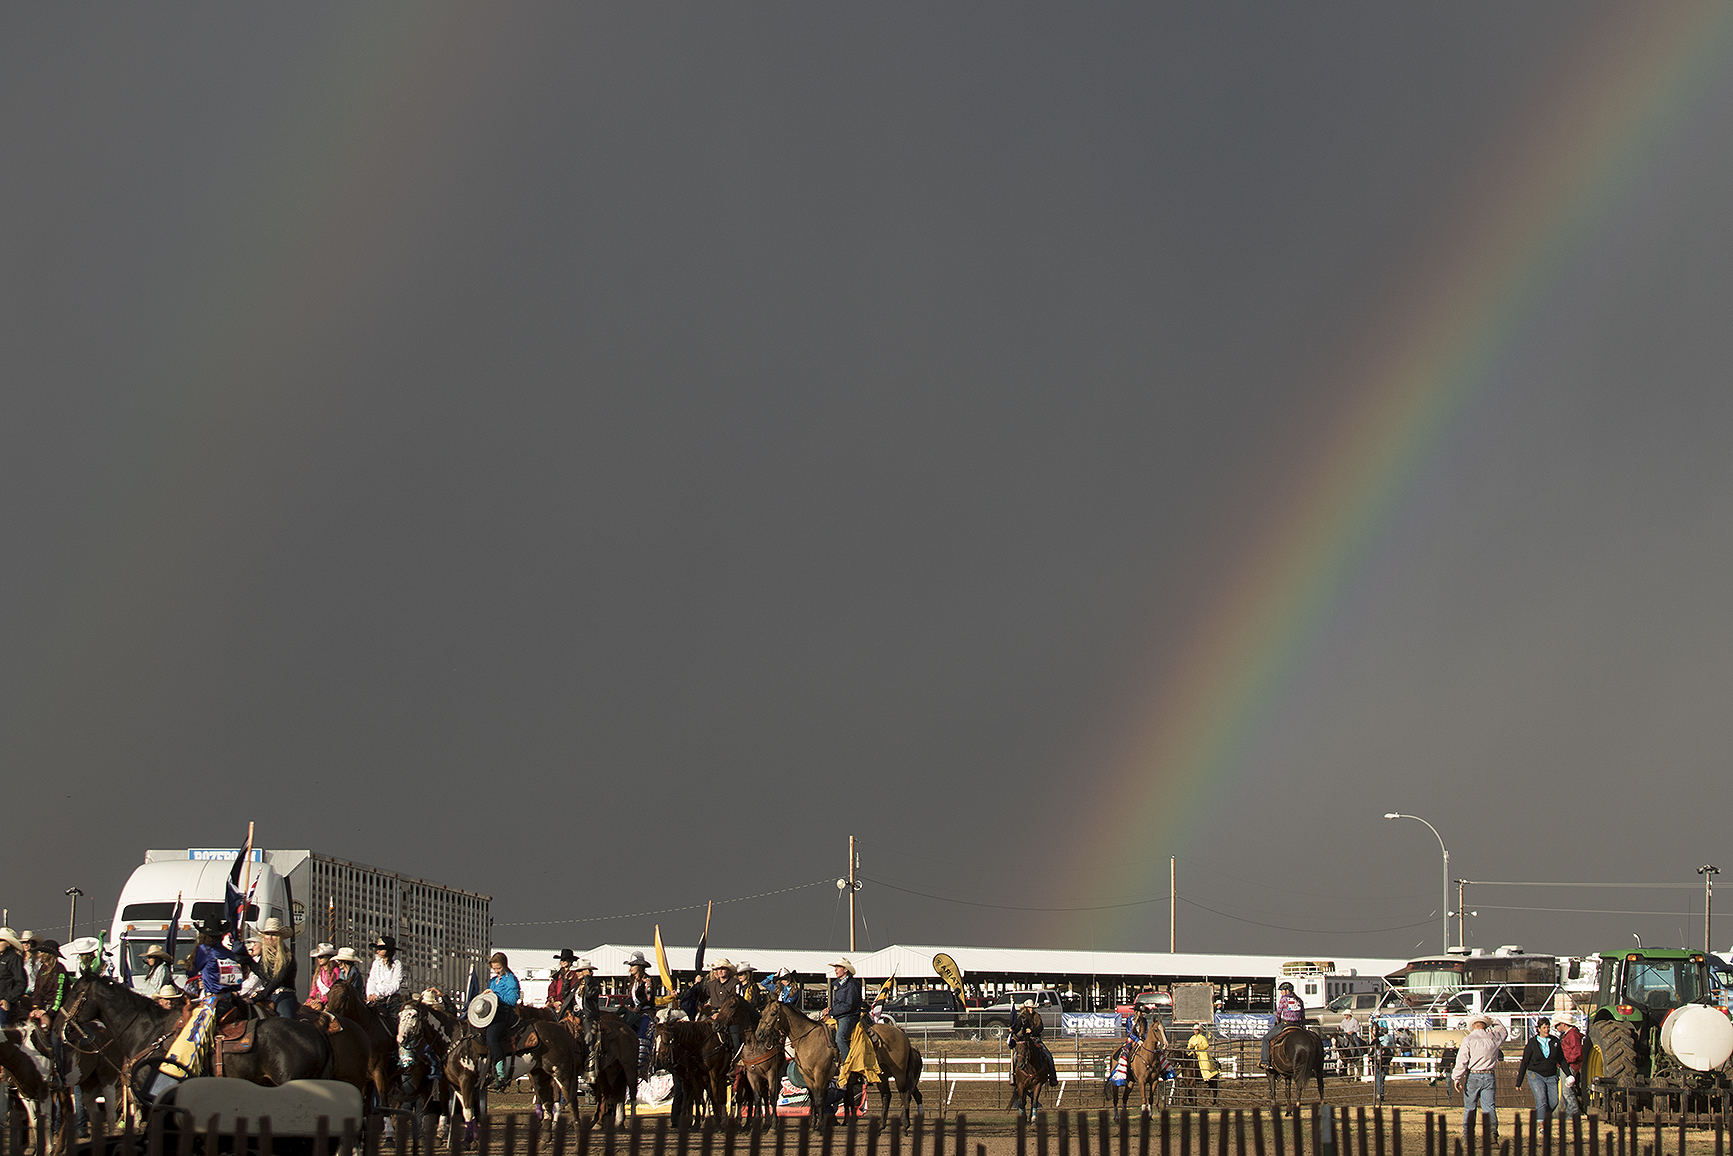 Contestants prepare for the start of the first performance of the National High School Finals Rodeo Sunday evening under a double rainbow at Morningside Park.